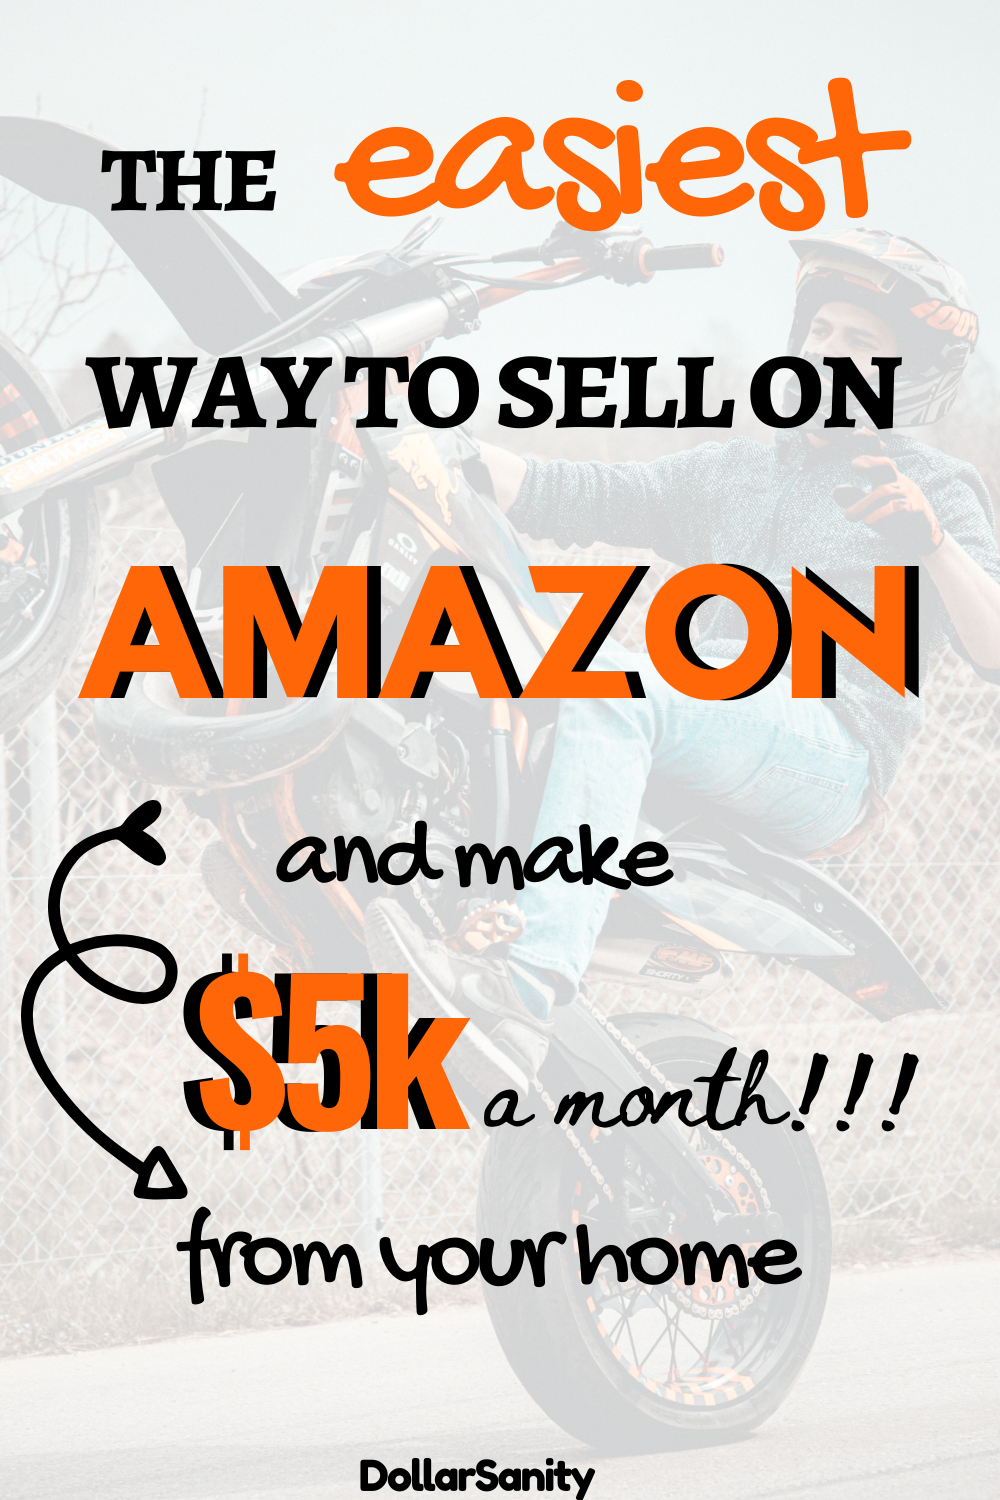 How to Sell Your Products on Amazon: A Beginner's